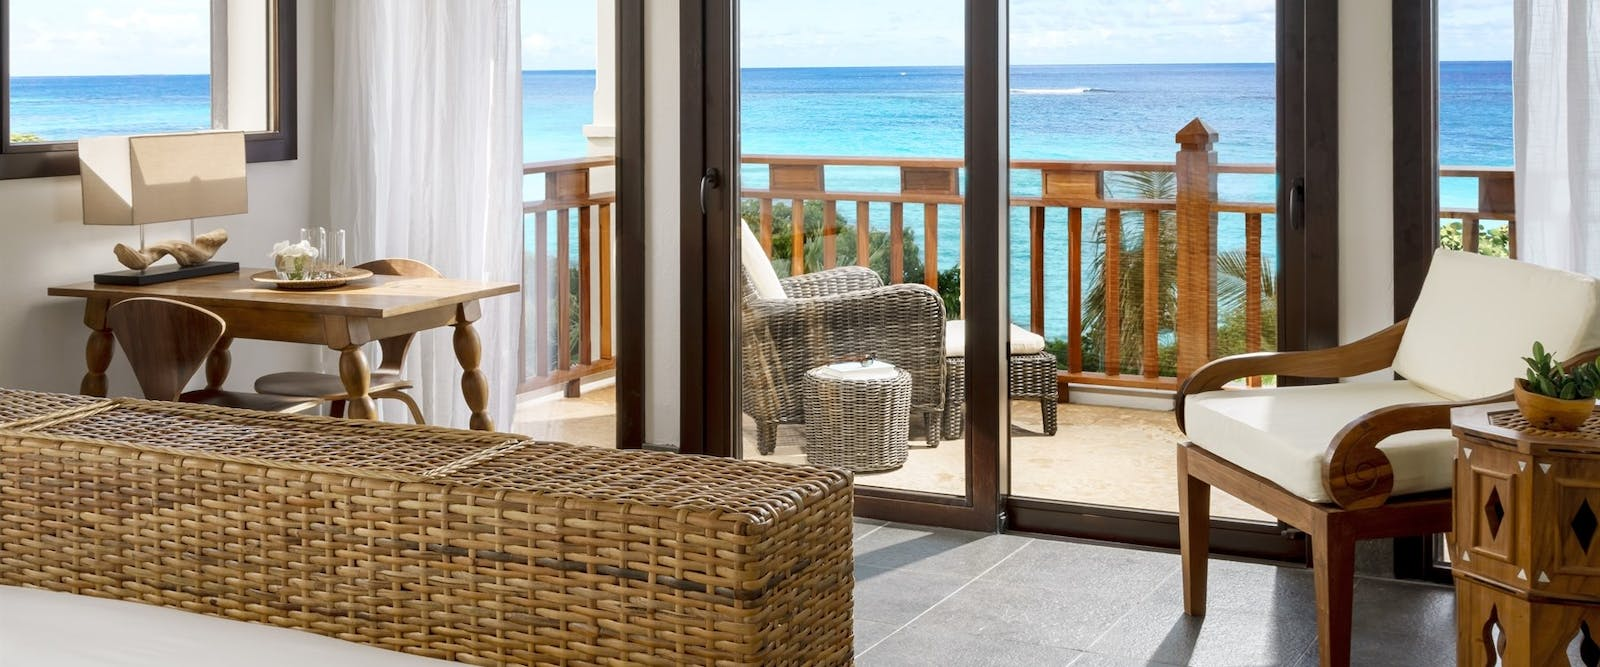 Corner King Bedroom at Zemi Beach House, Anguilla